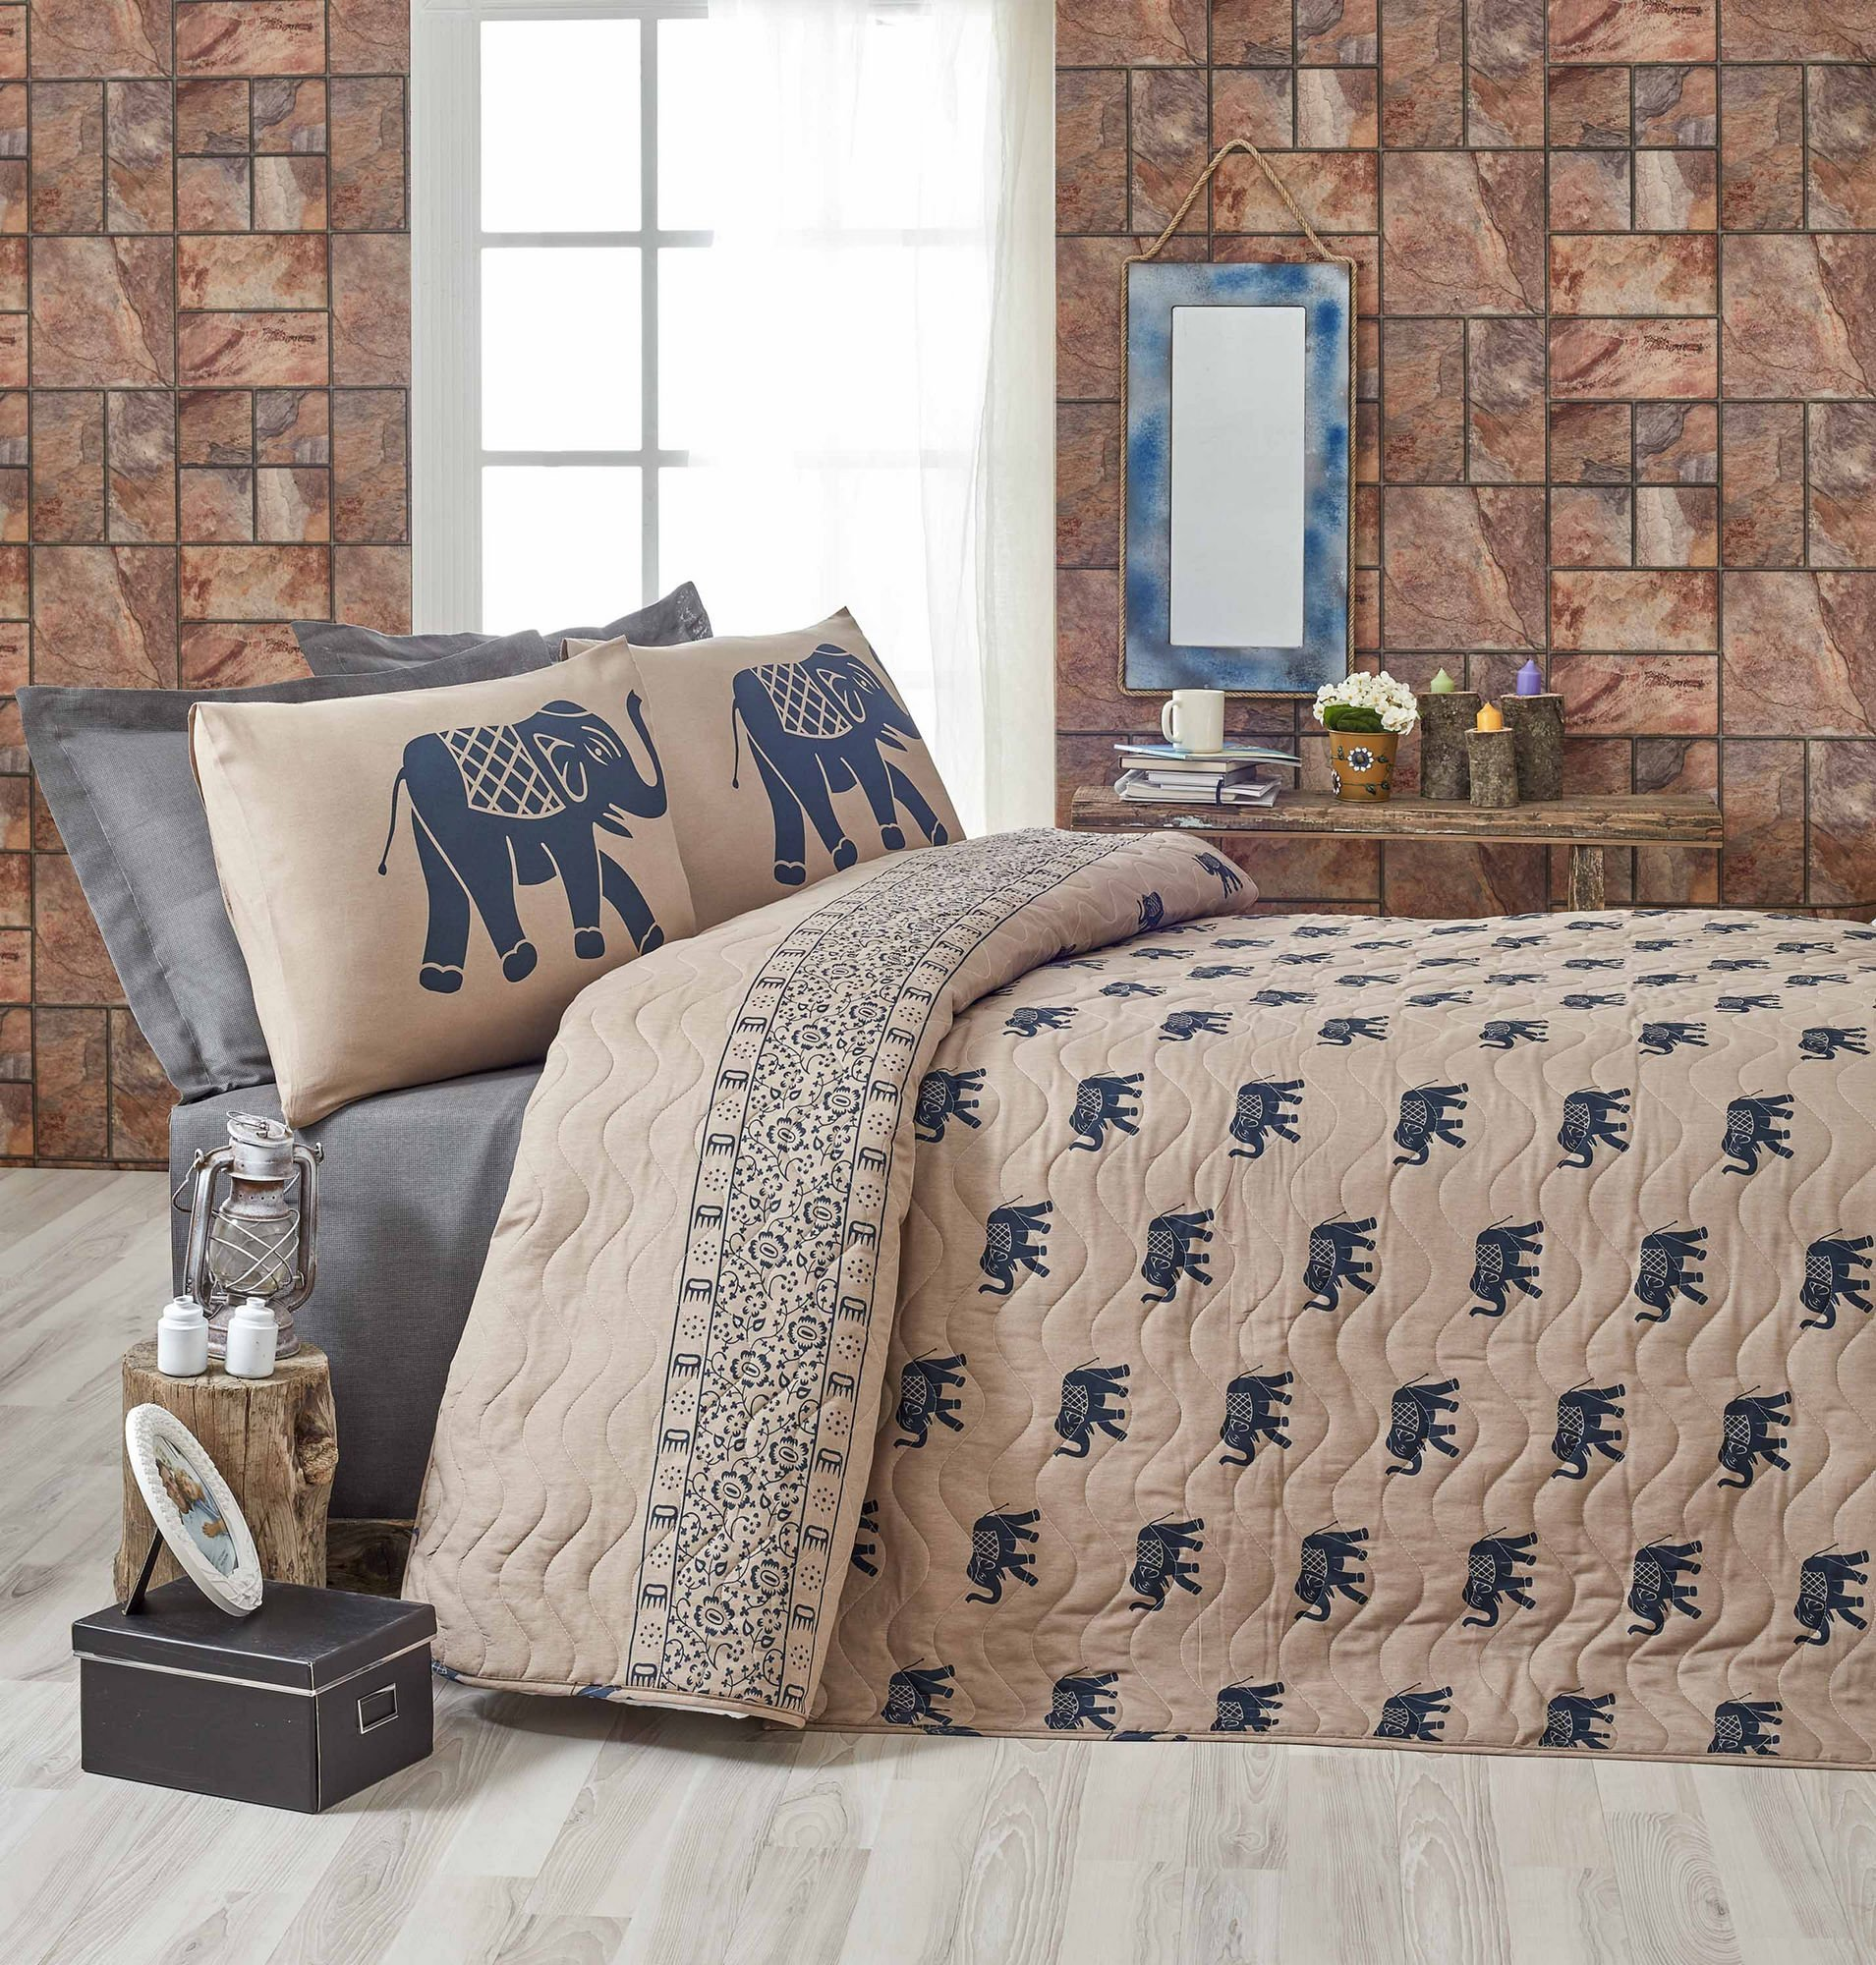 LaModaHome Big Animals Bedding Set, 65% Cotton 35% Polyester - Saddle on Elephants Back - Set of 3-100% Fiber Filling Coverlet and 2 Pillowcases for Twin Bed